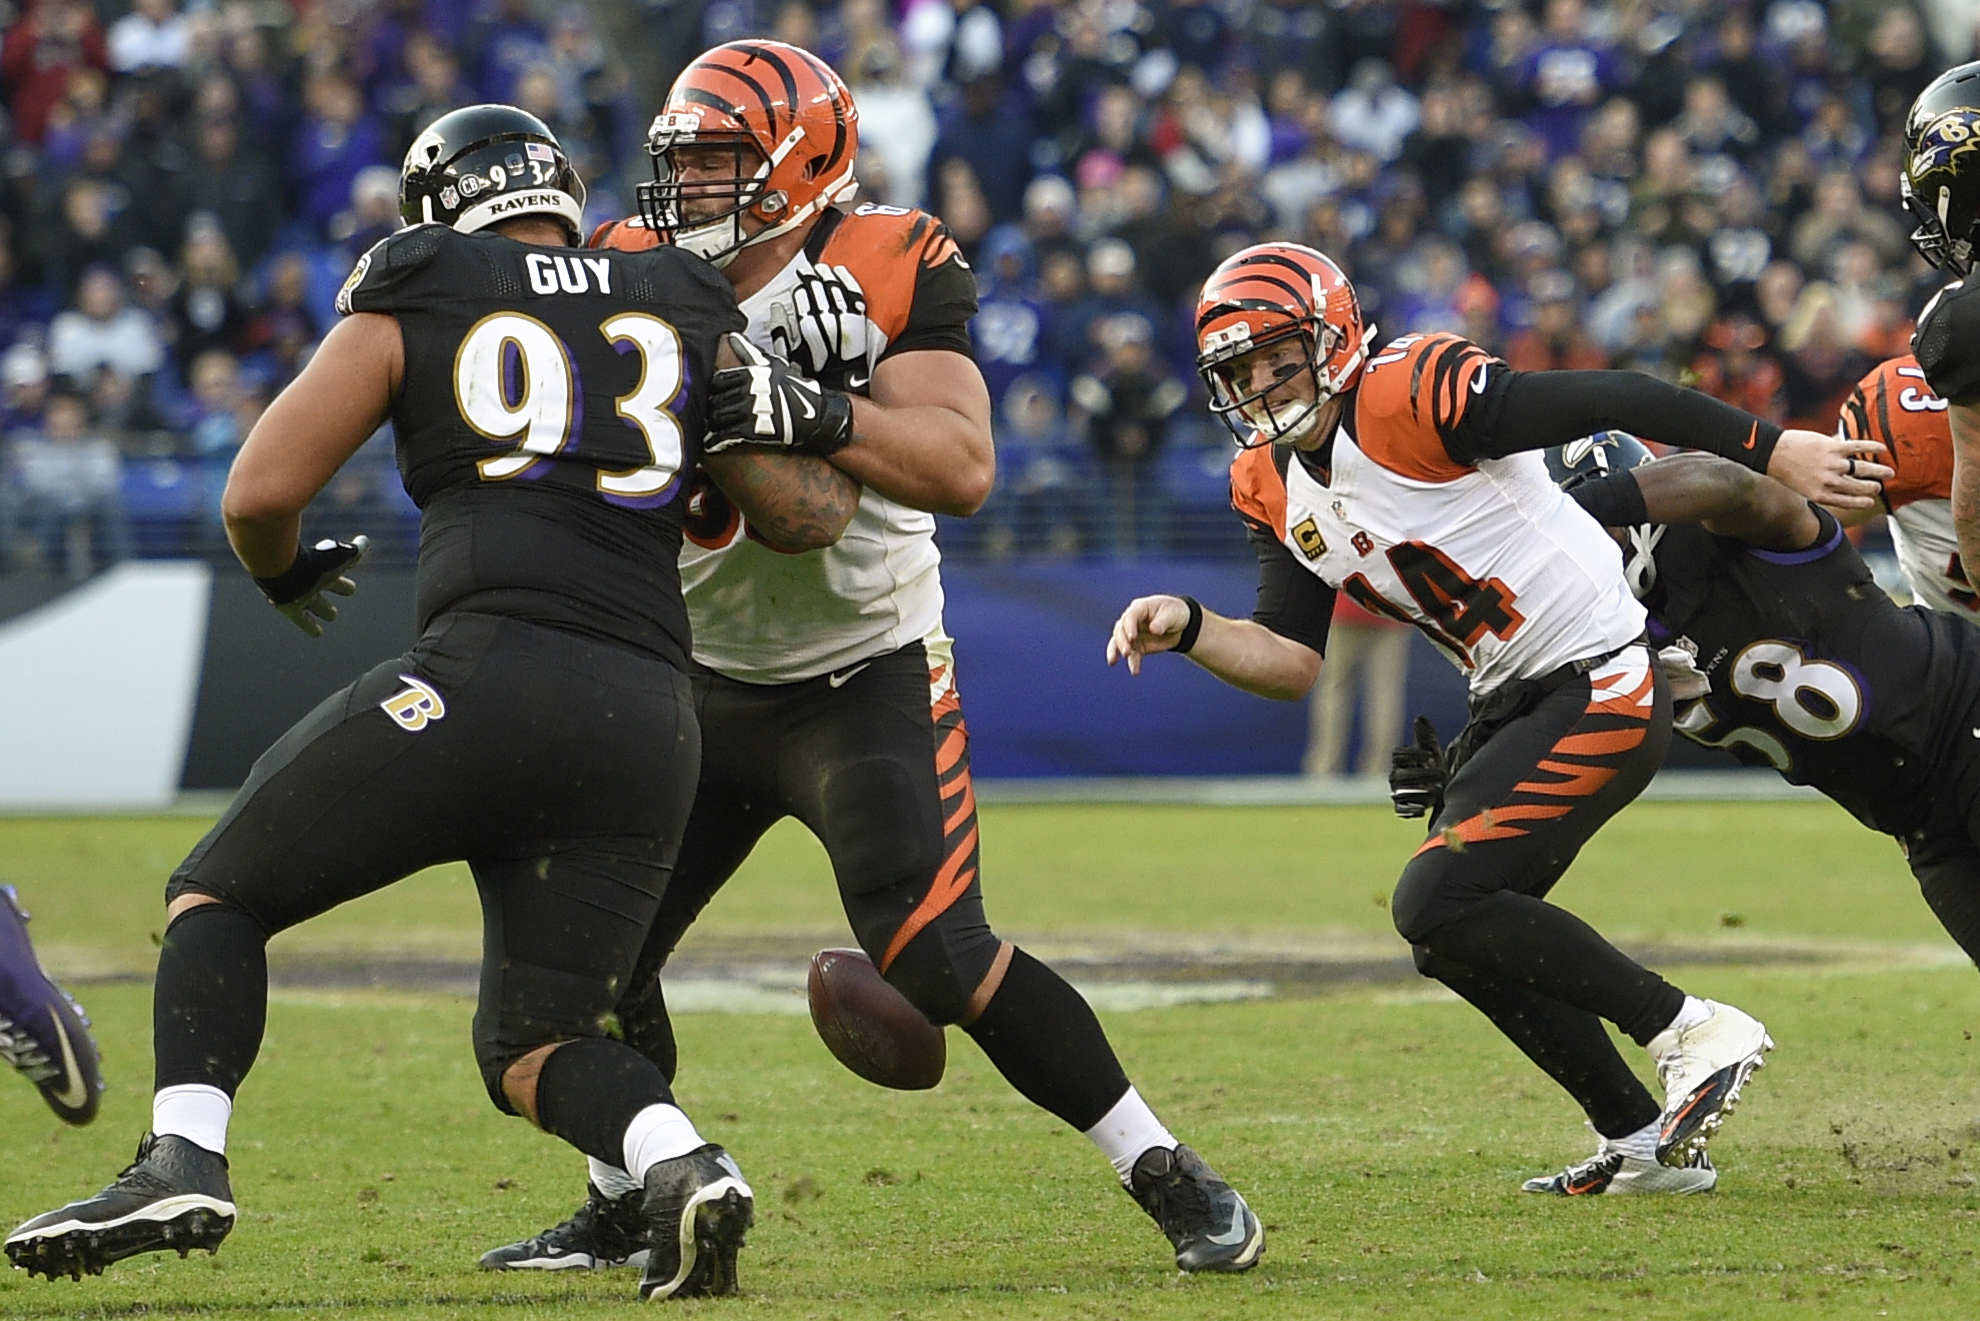 FILE - In this Nov. 27, 2016, file photo, Cincinnati Bengals quarterback Andy Dalton (14) chases a fumbled ball after being sacked by Baltimore Ravens outside linebacker Elvis Dumervil (58), far right, during the second half of an NFL football game agains